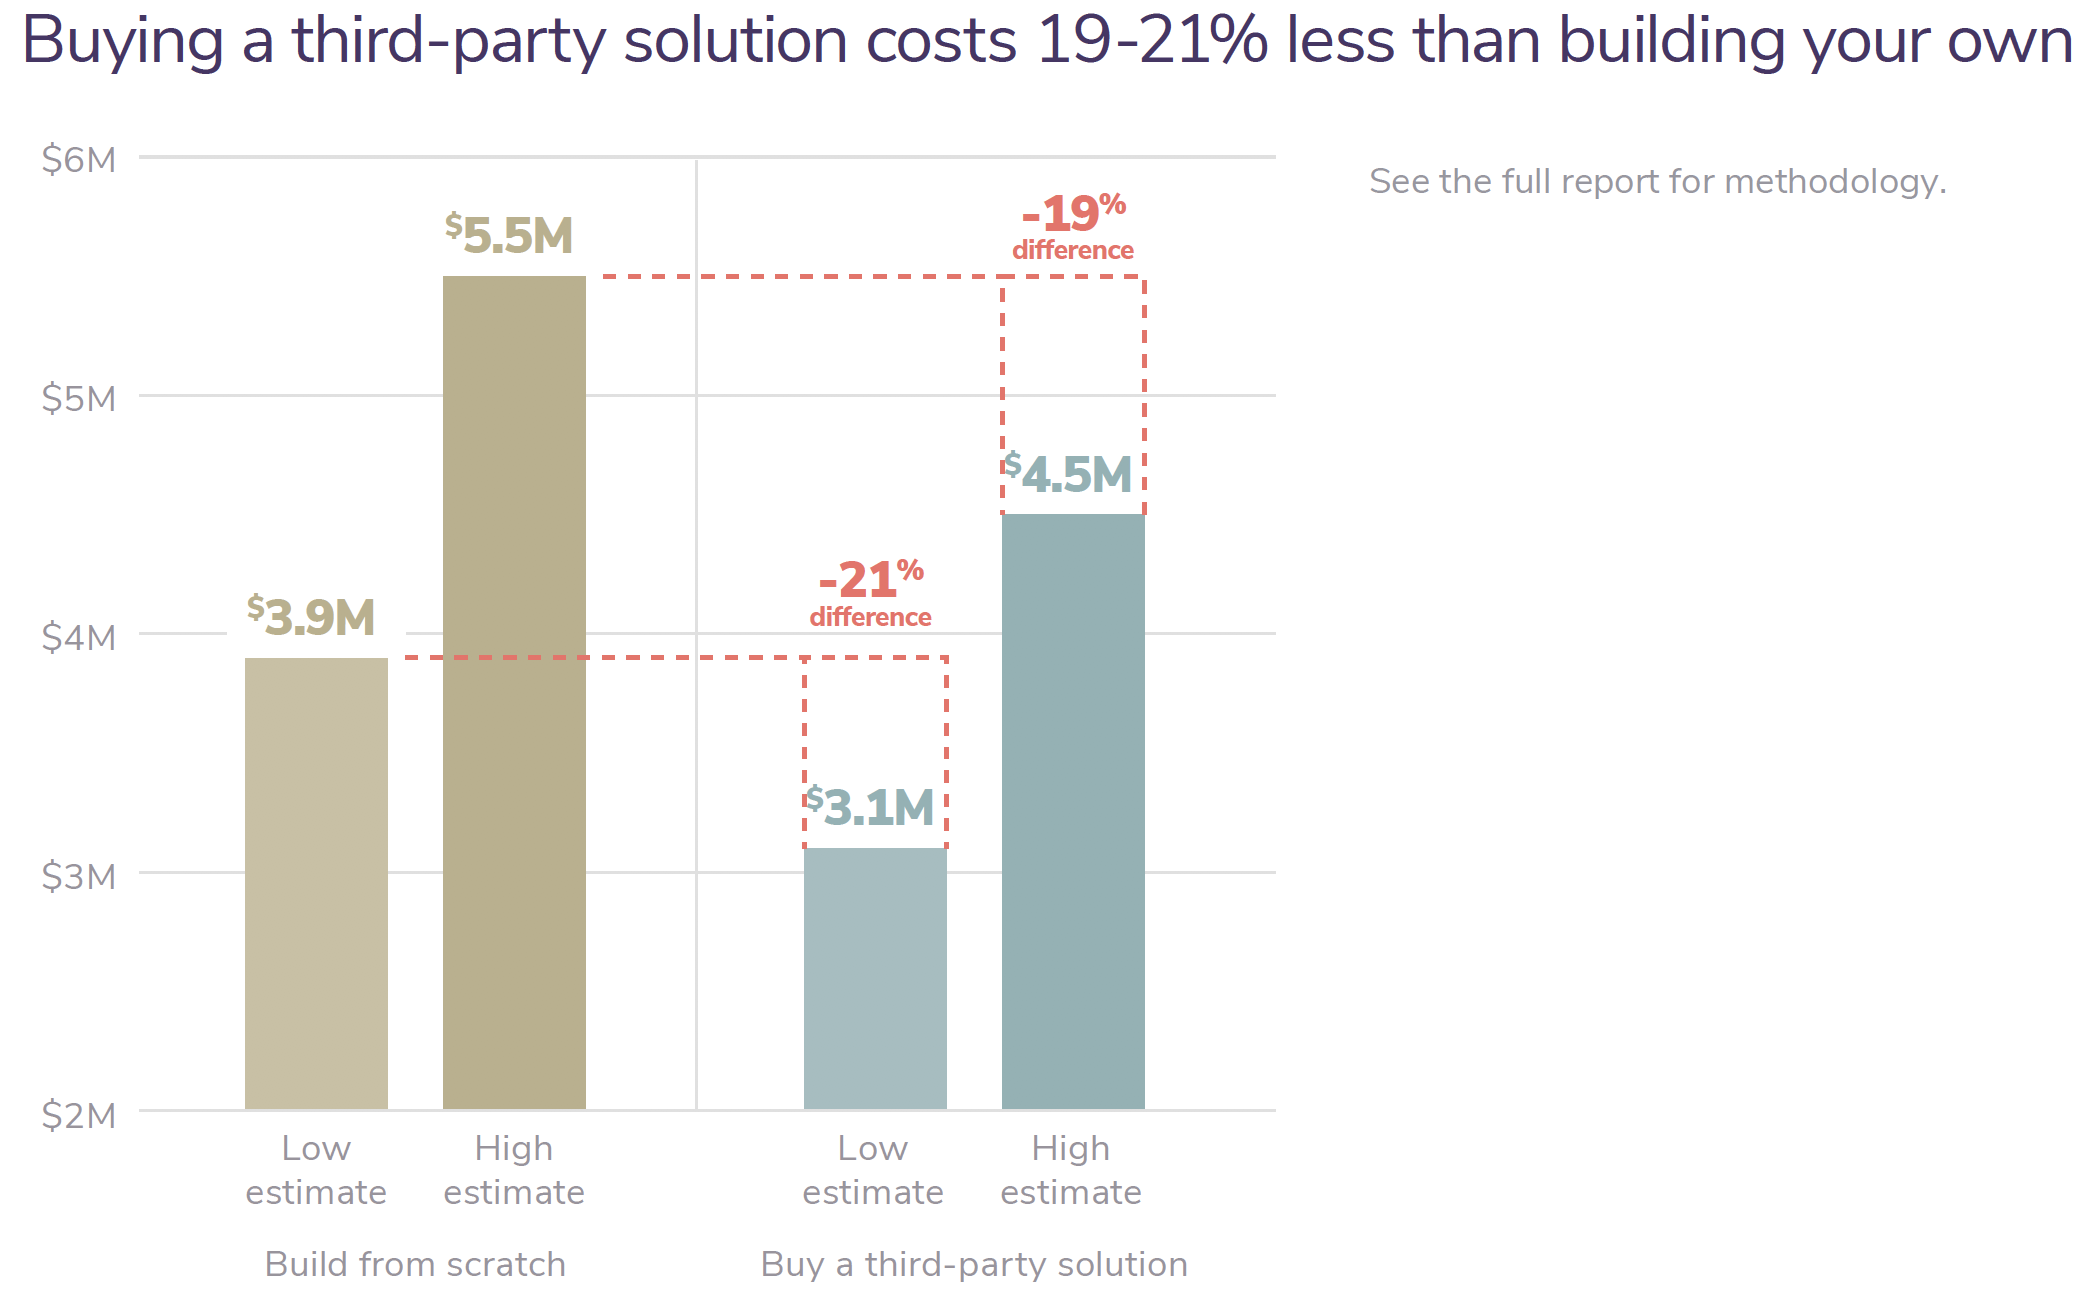 Buying a third-party solution costs 19-21% less than building your own